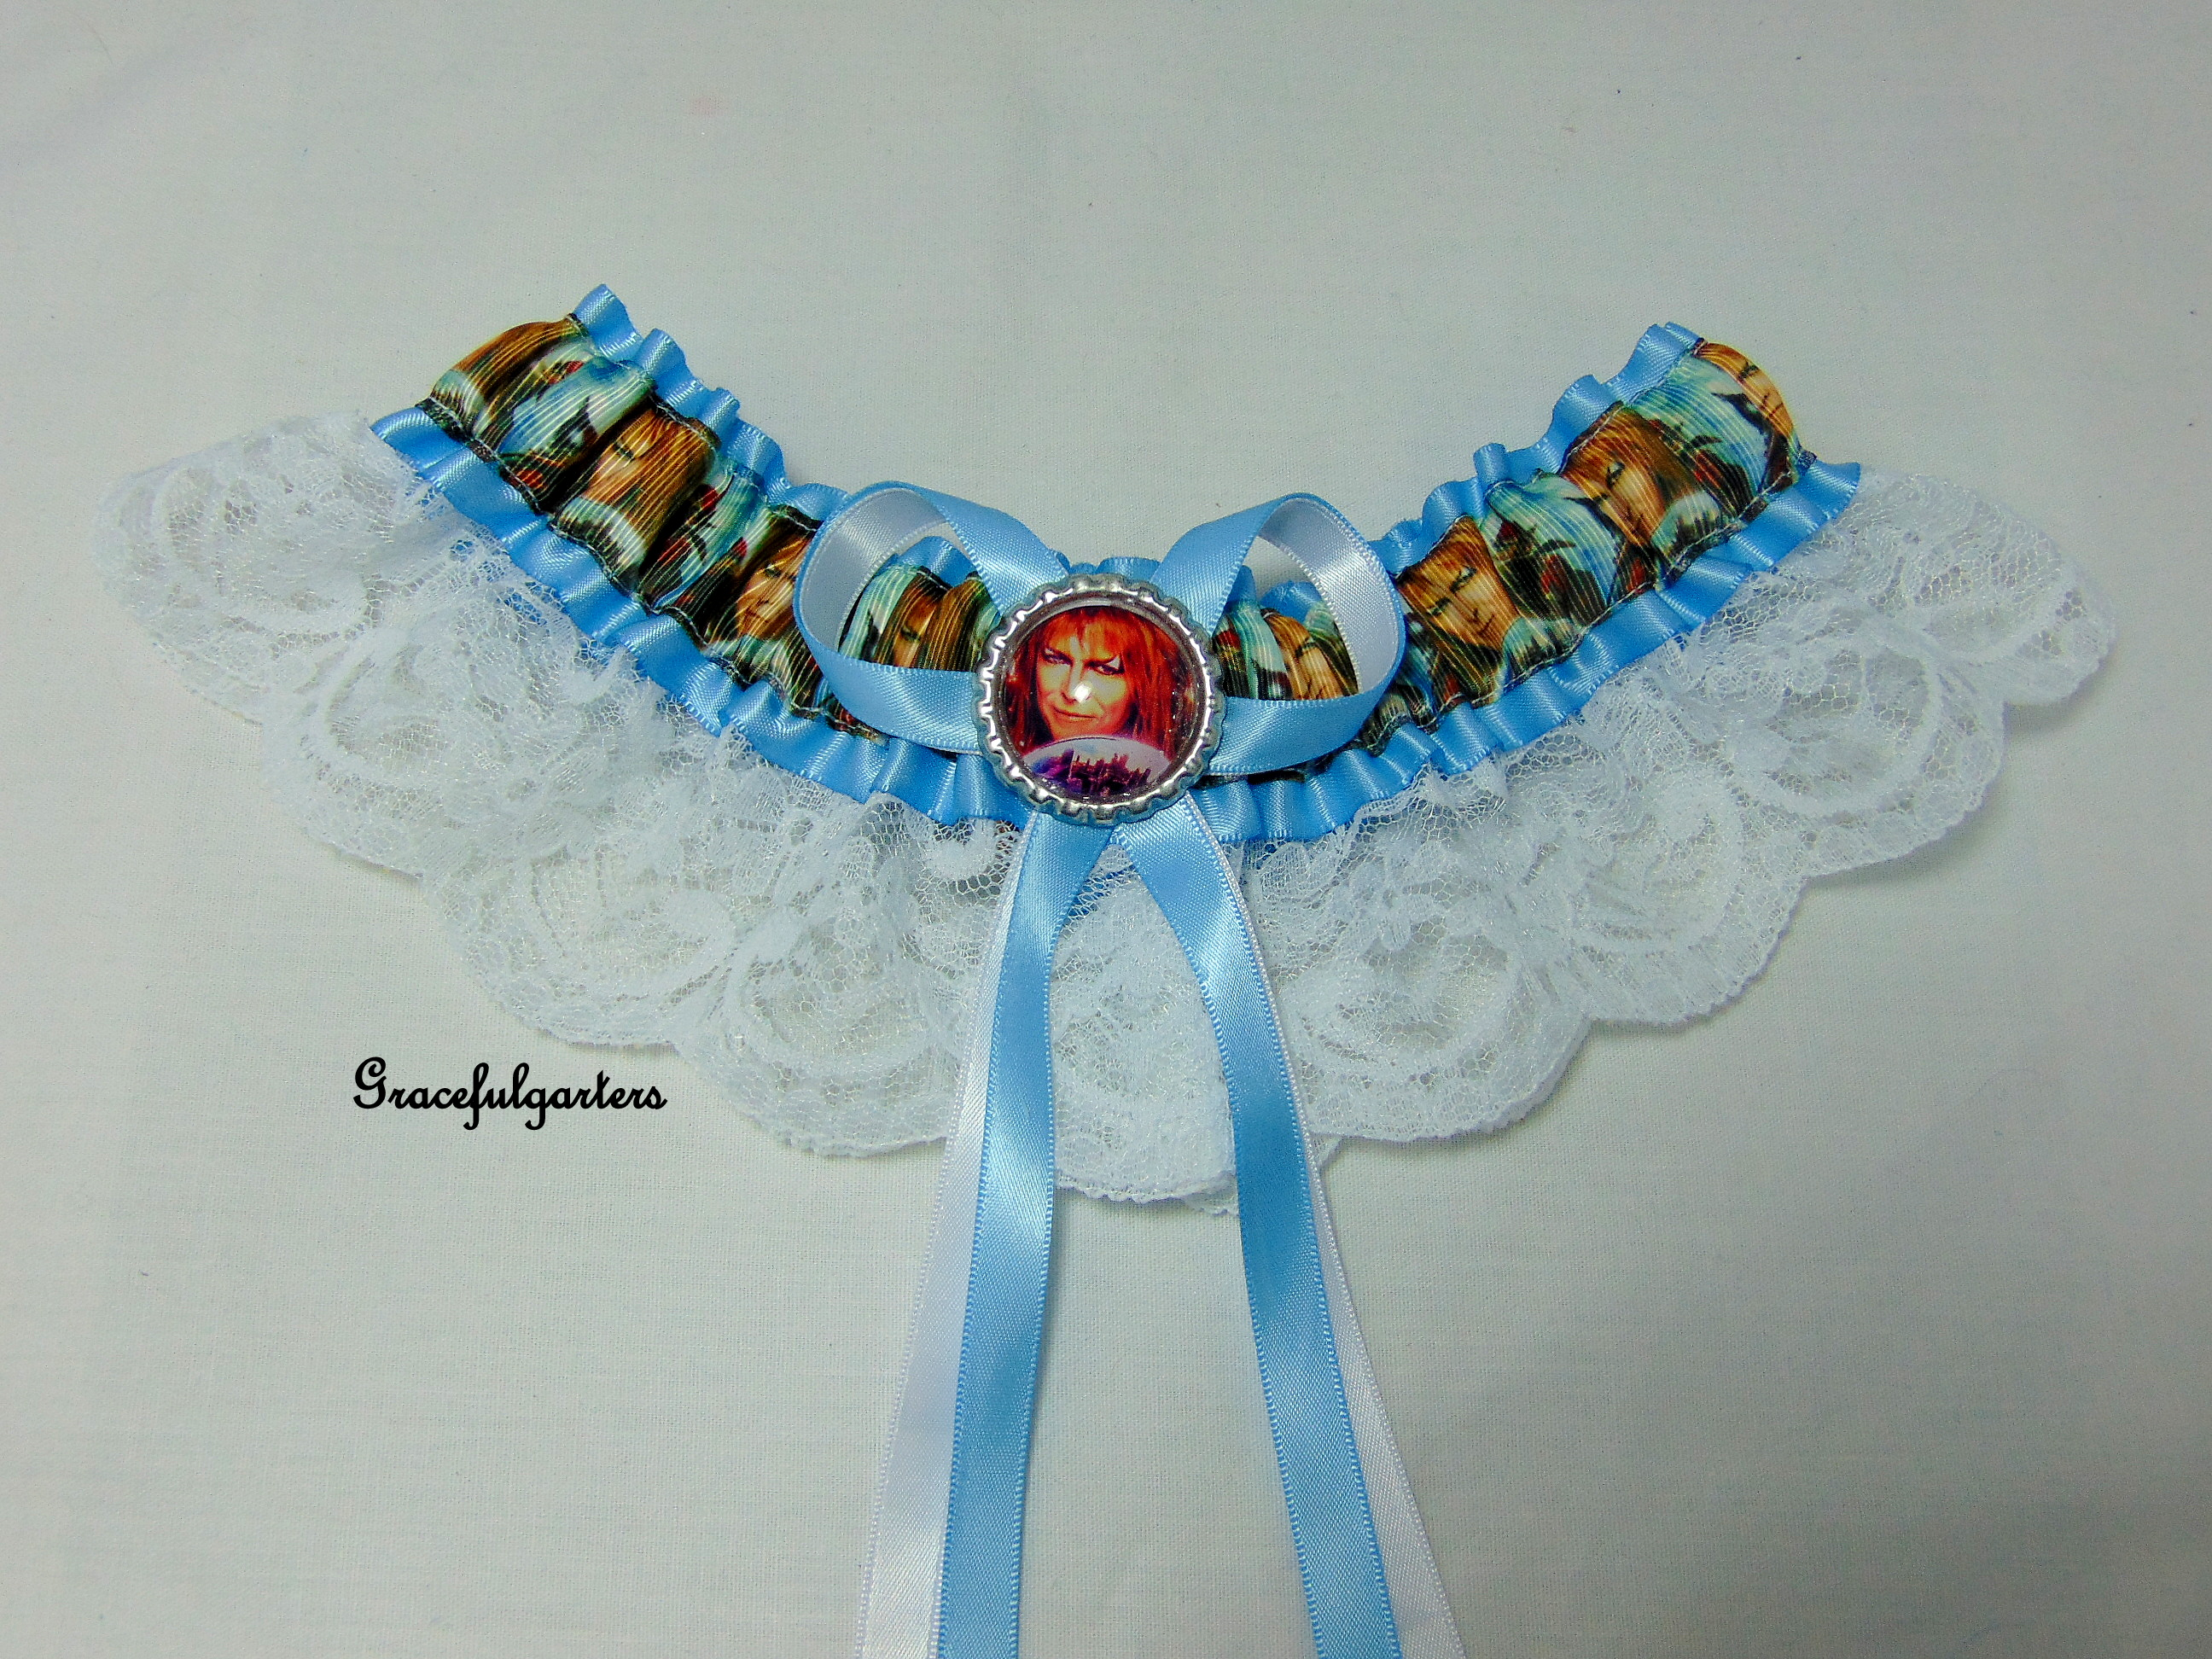 David Bowie Labyrinth Bridal Wedding Garter